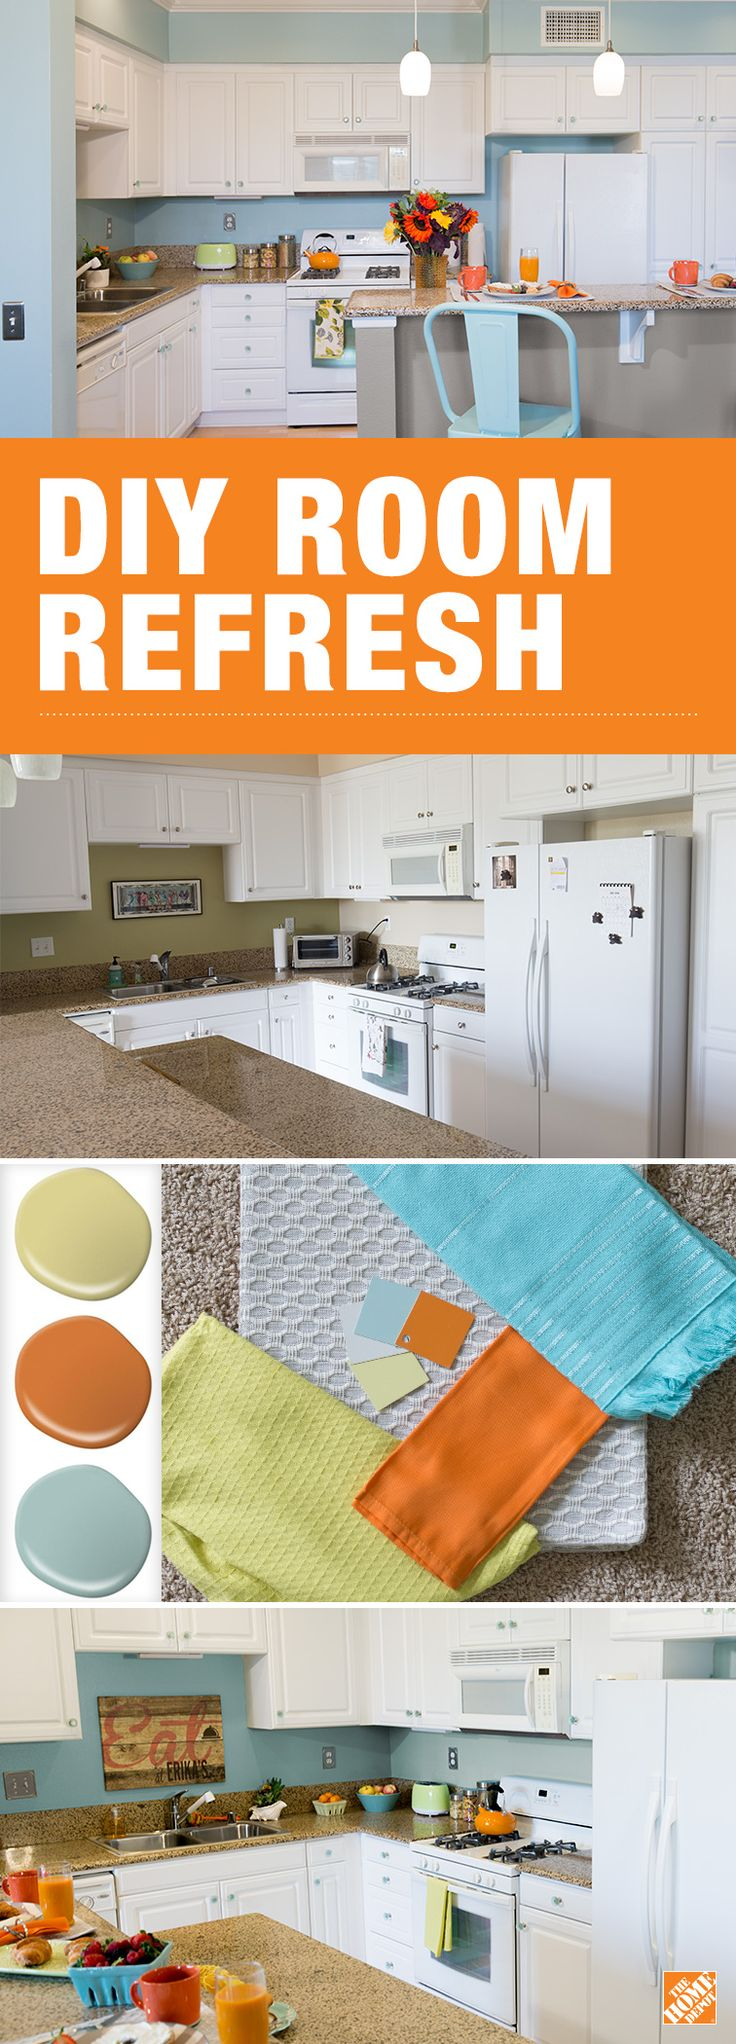 17 best images about all about paint on pinterest paint colors outdoor rugs and paint - Behr kitchen paint colors ...